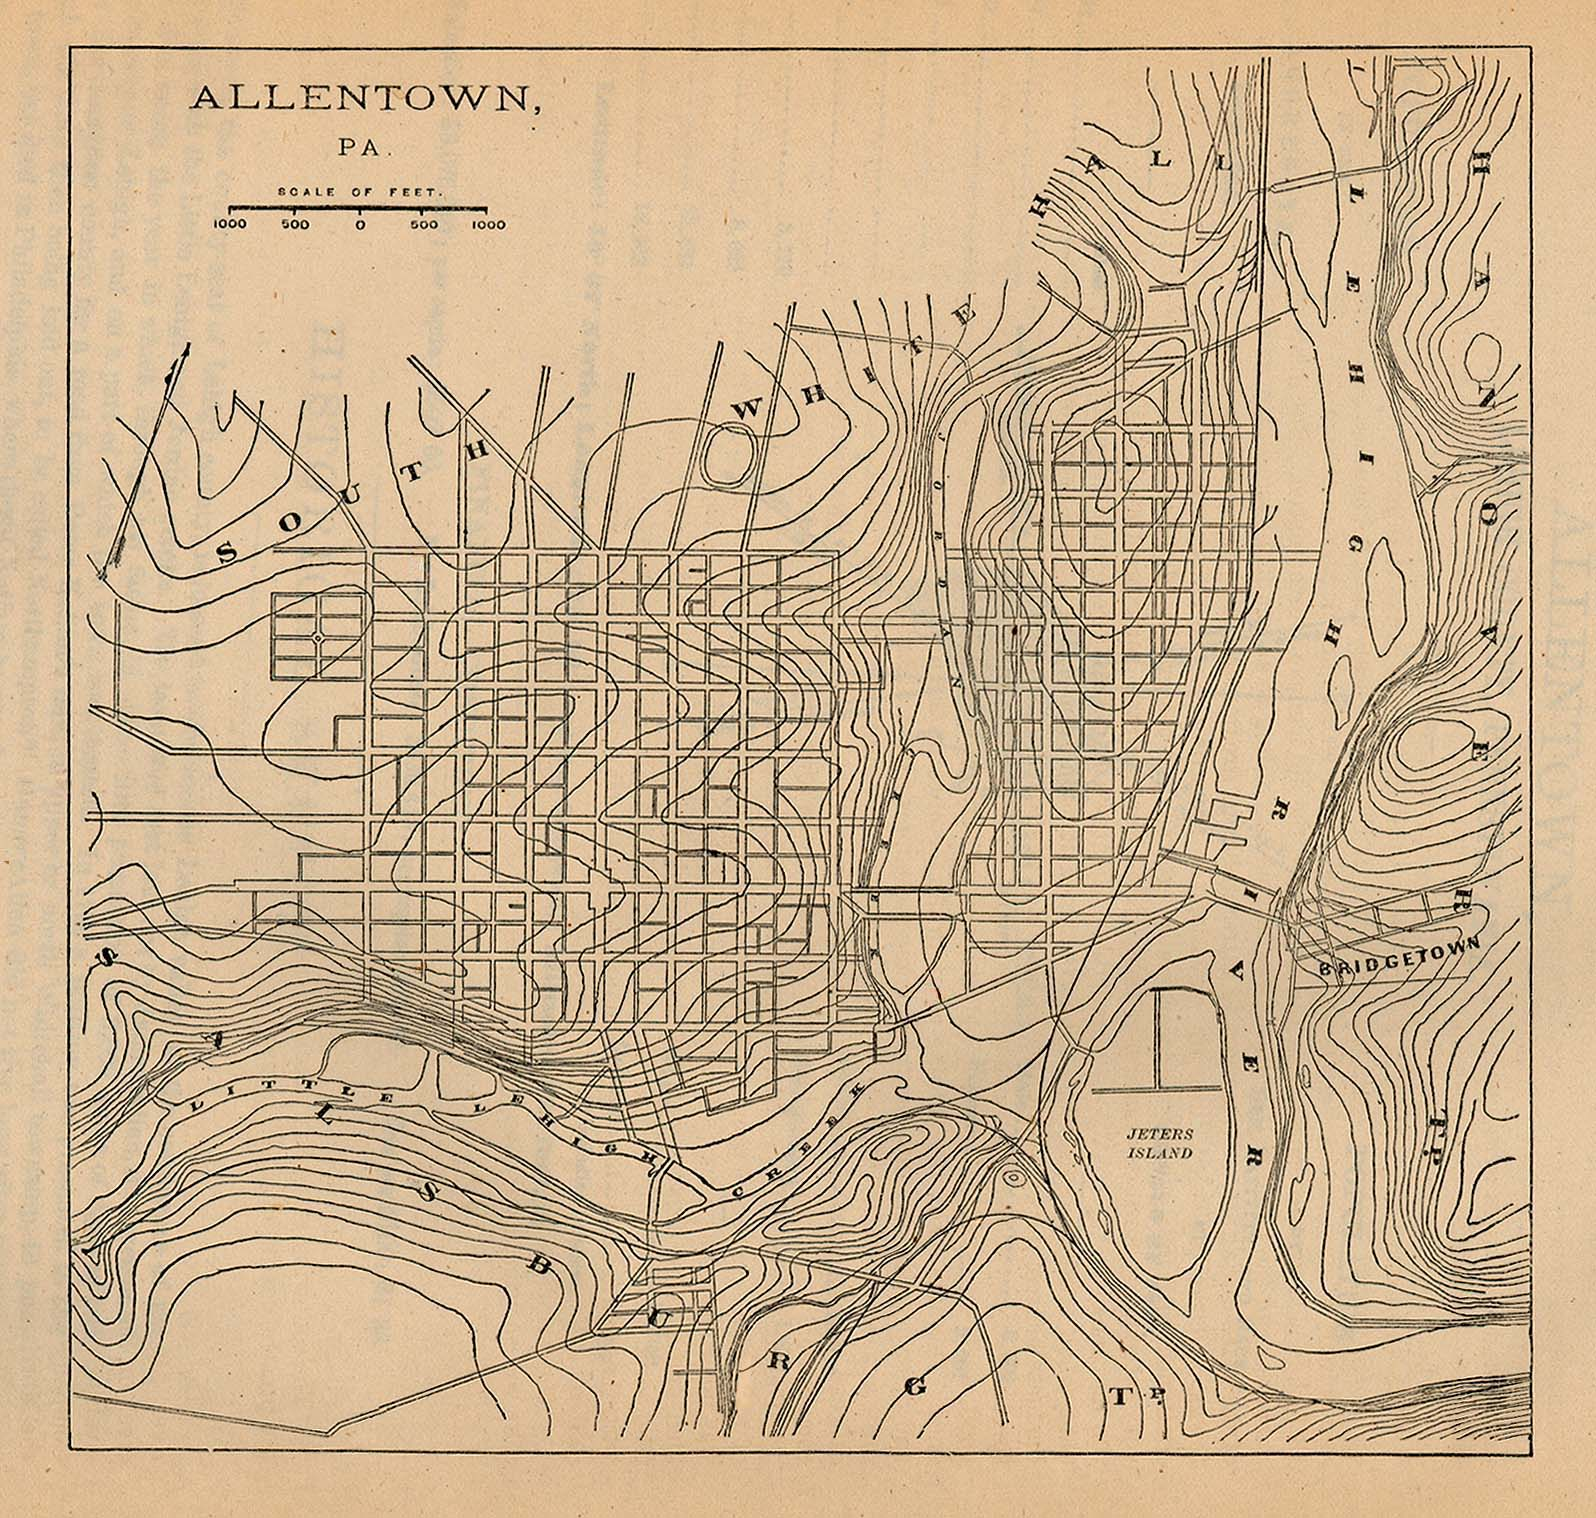 United States Historical City Maps Perry Castaneda Map Collection Ut Library Online